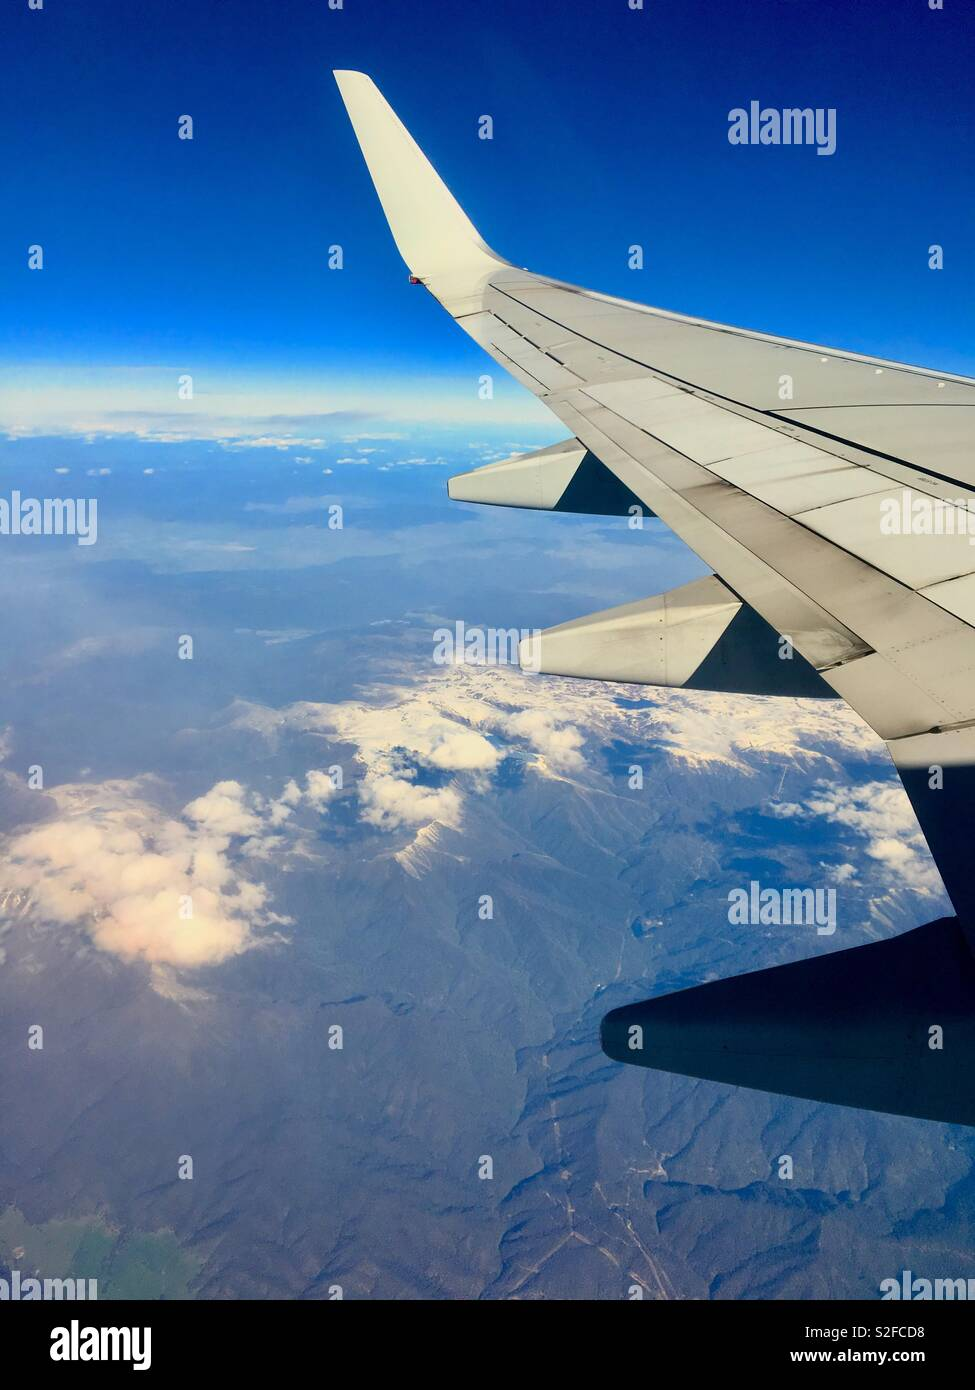 View of snowy mountains in Australia from aeroplane window - Stock Image